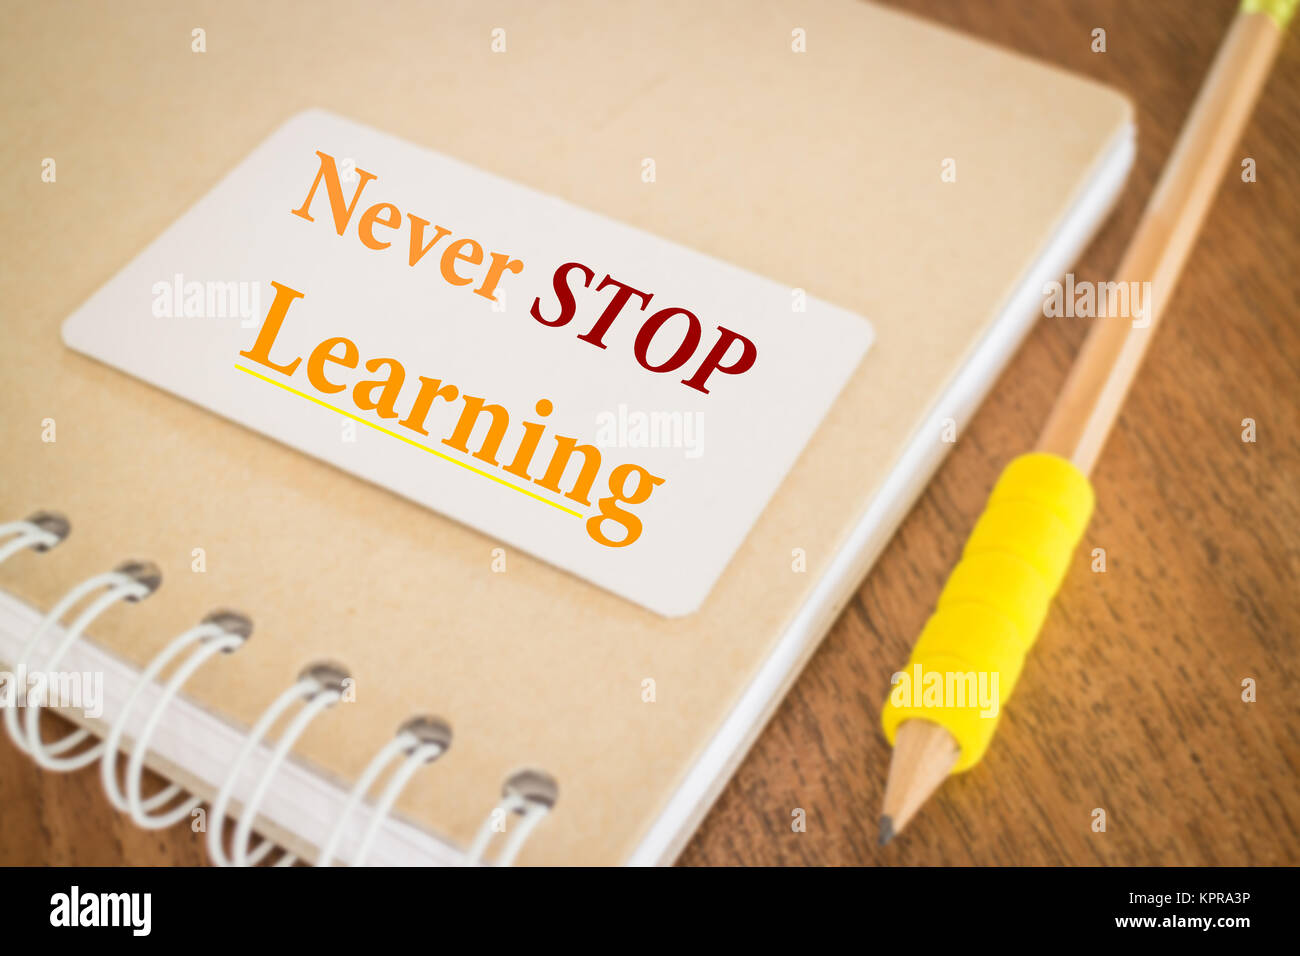 never stop learning motivational quote about education stock